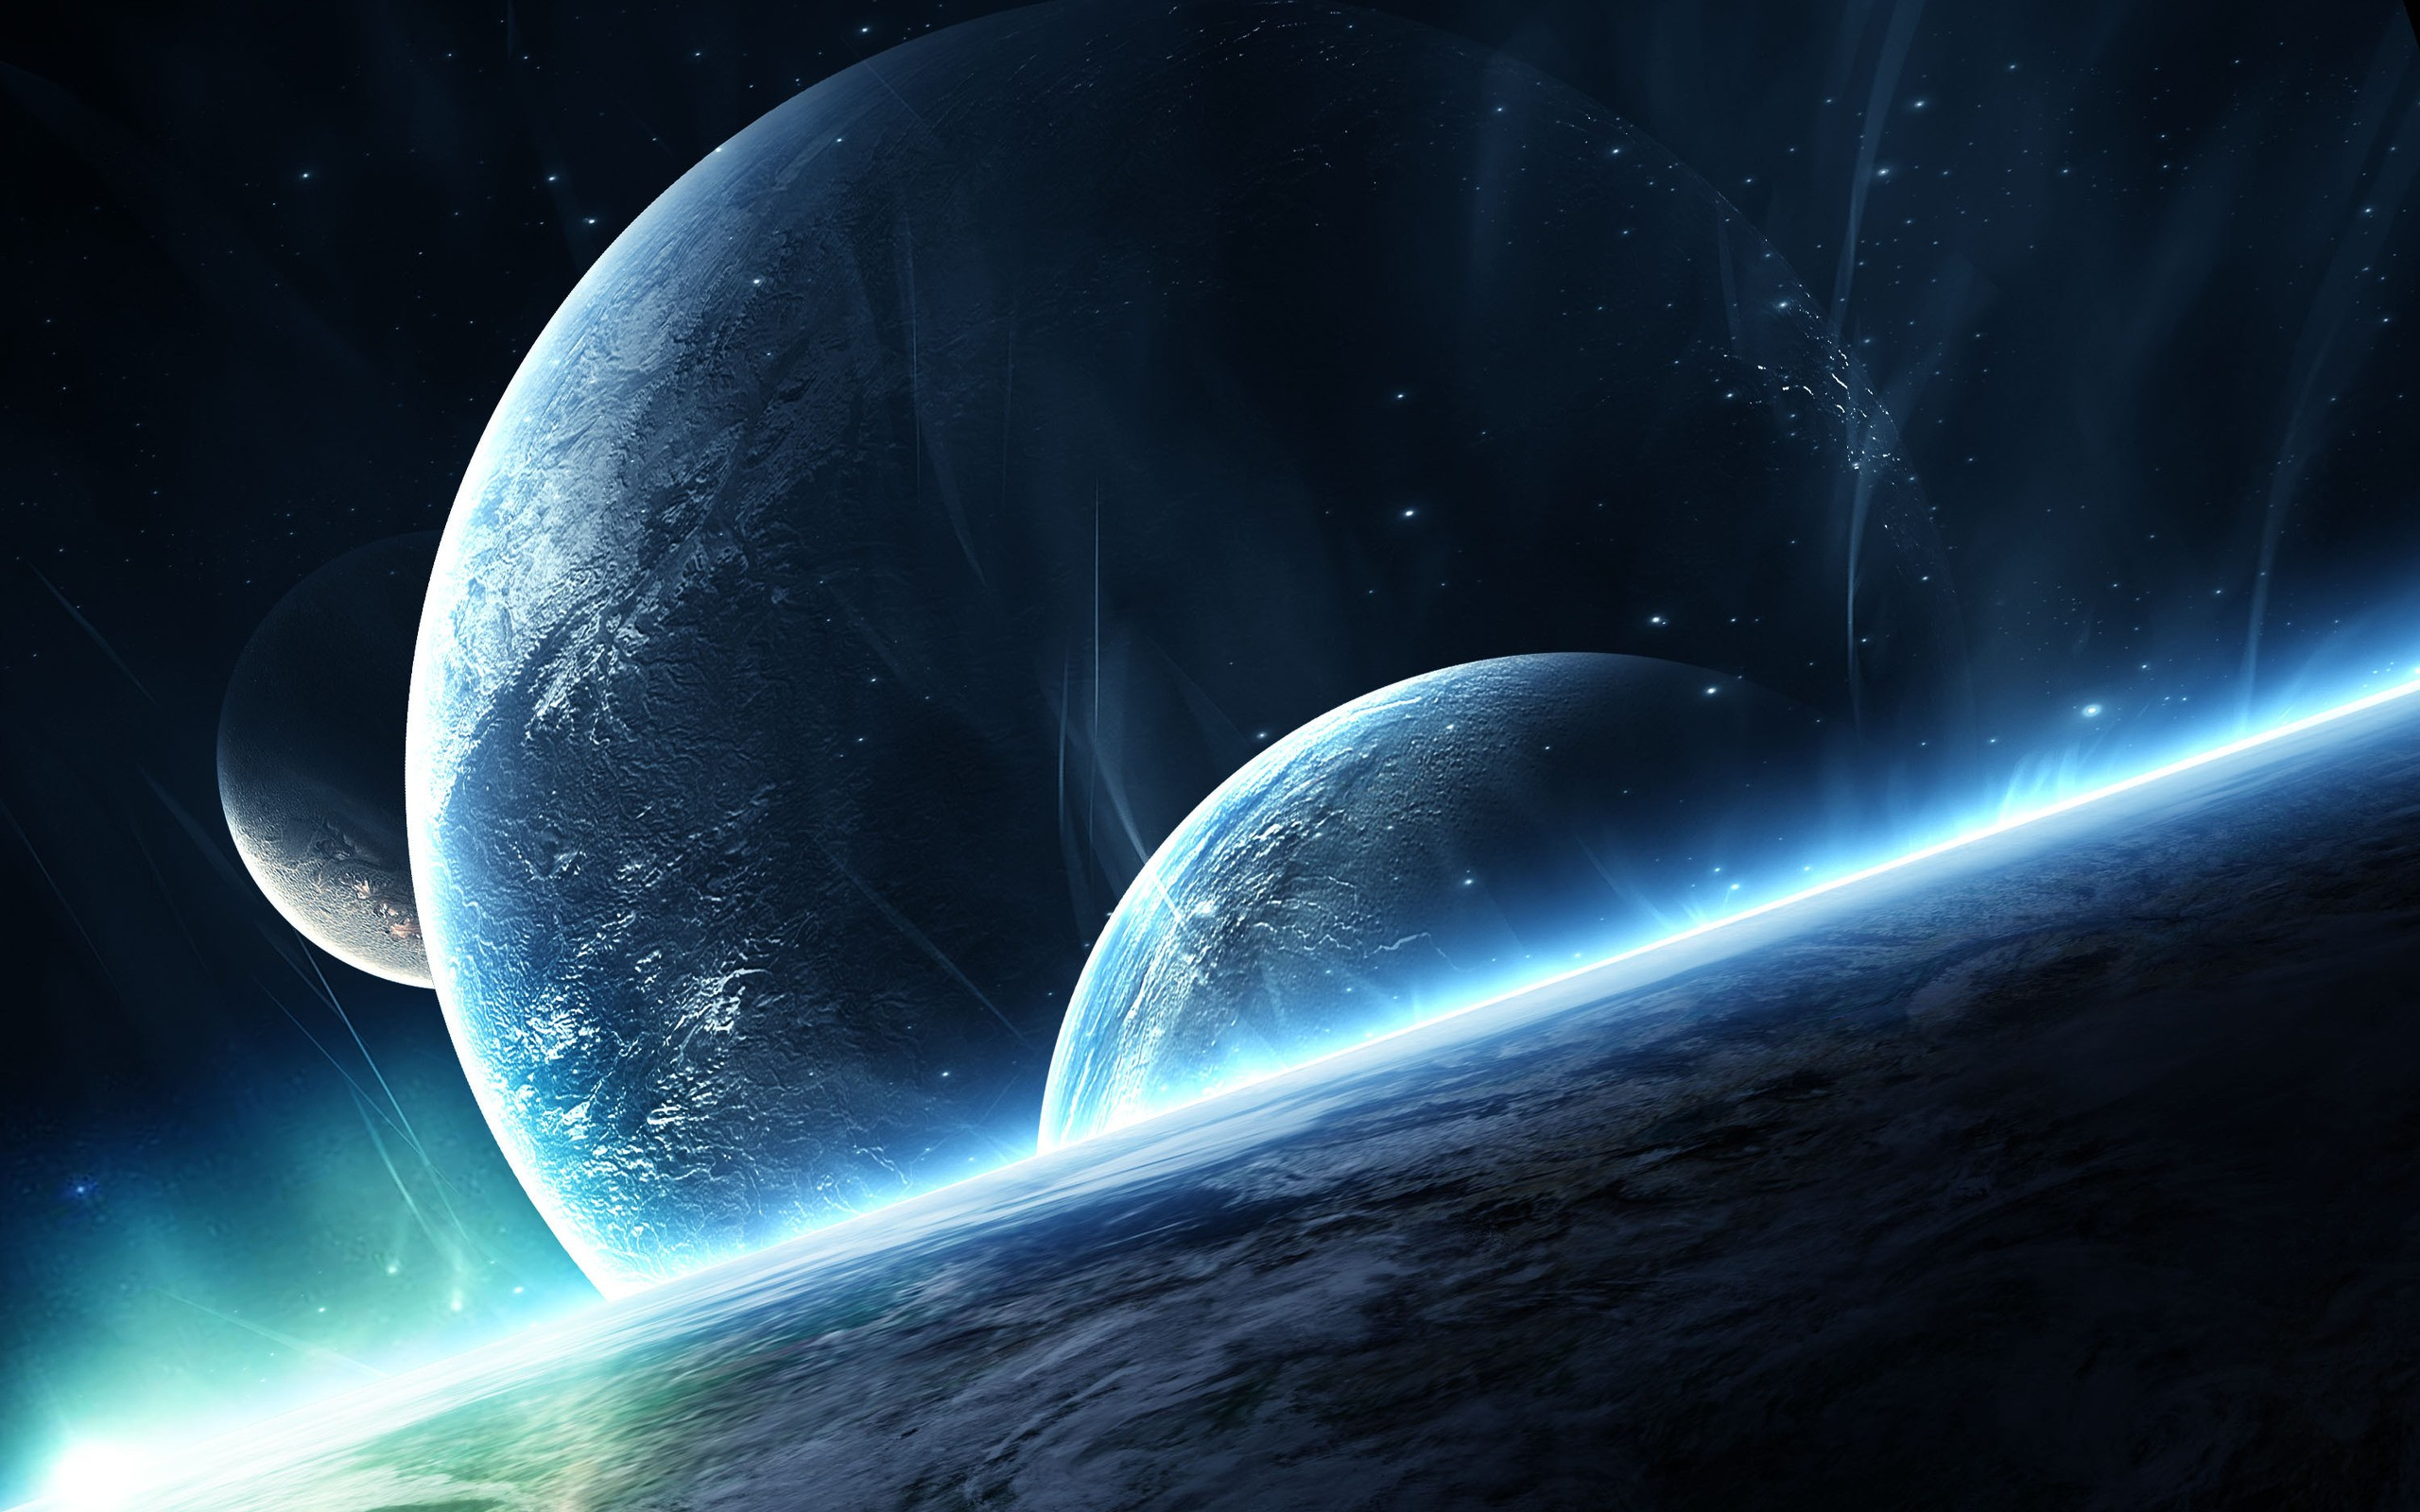 Outer Space Wallpapers - Full HD | Free Desktop Backgrounds